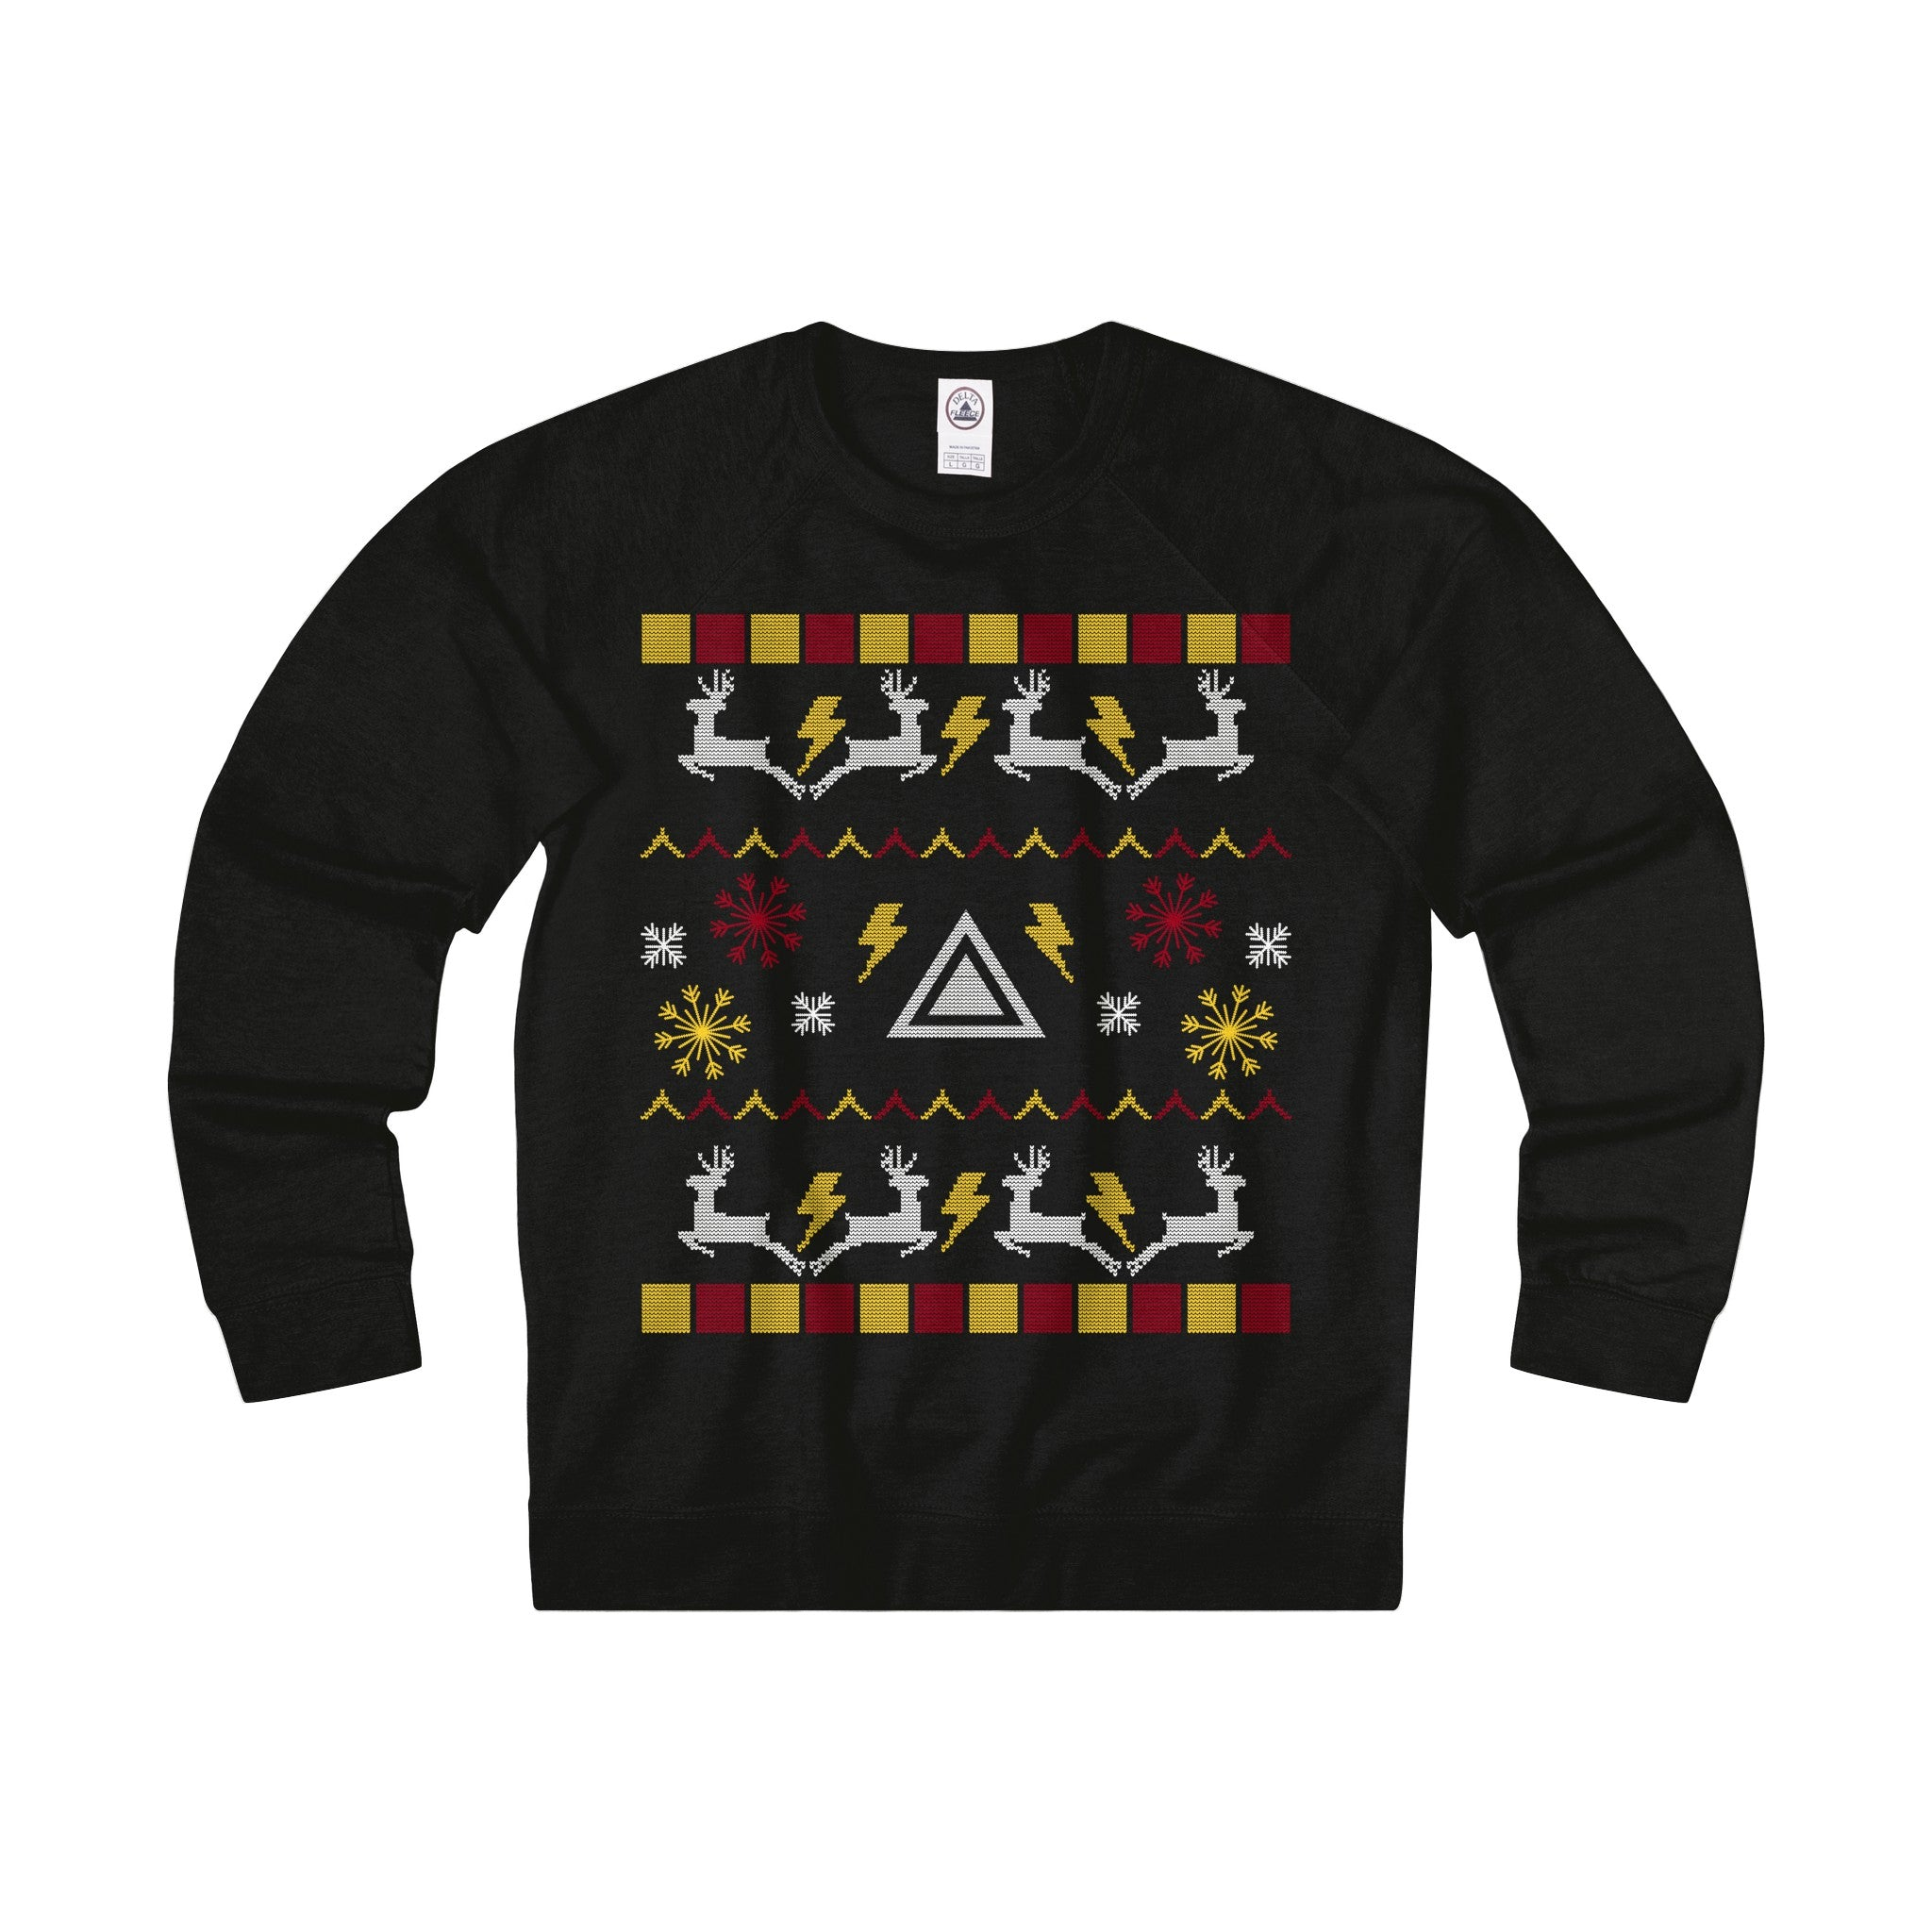 harry potter ugly christmas sweater adult unisex sweatshirt - Harry Potter Ugly Christmas Sweater